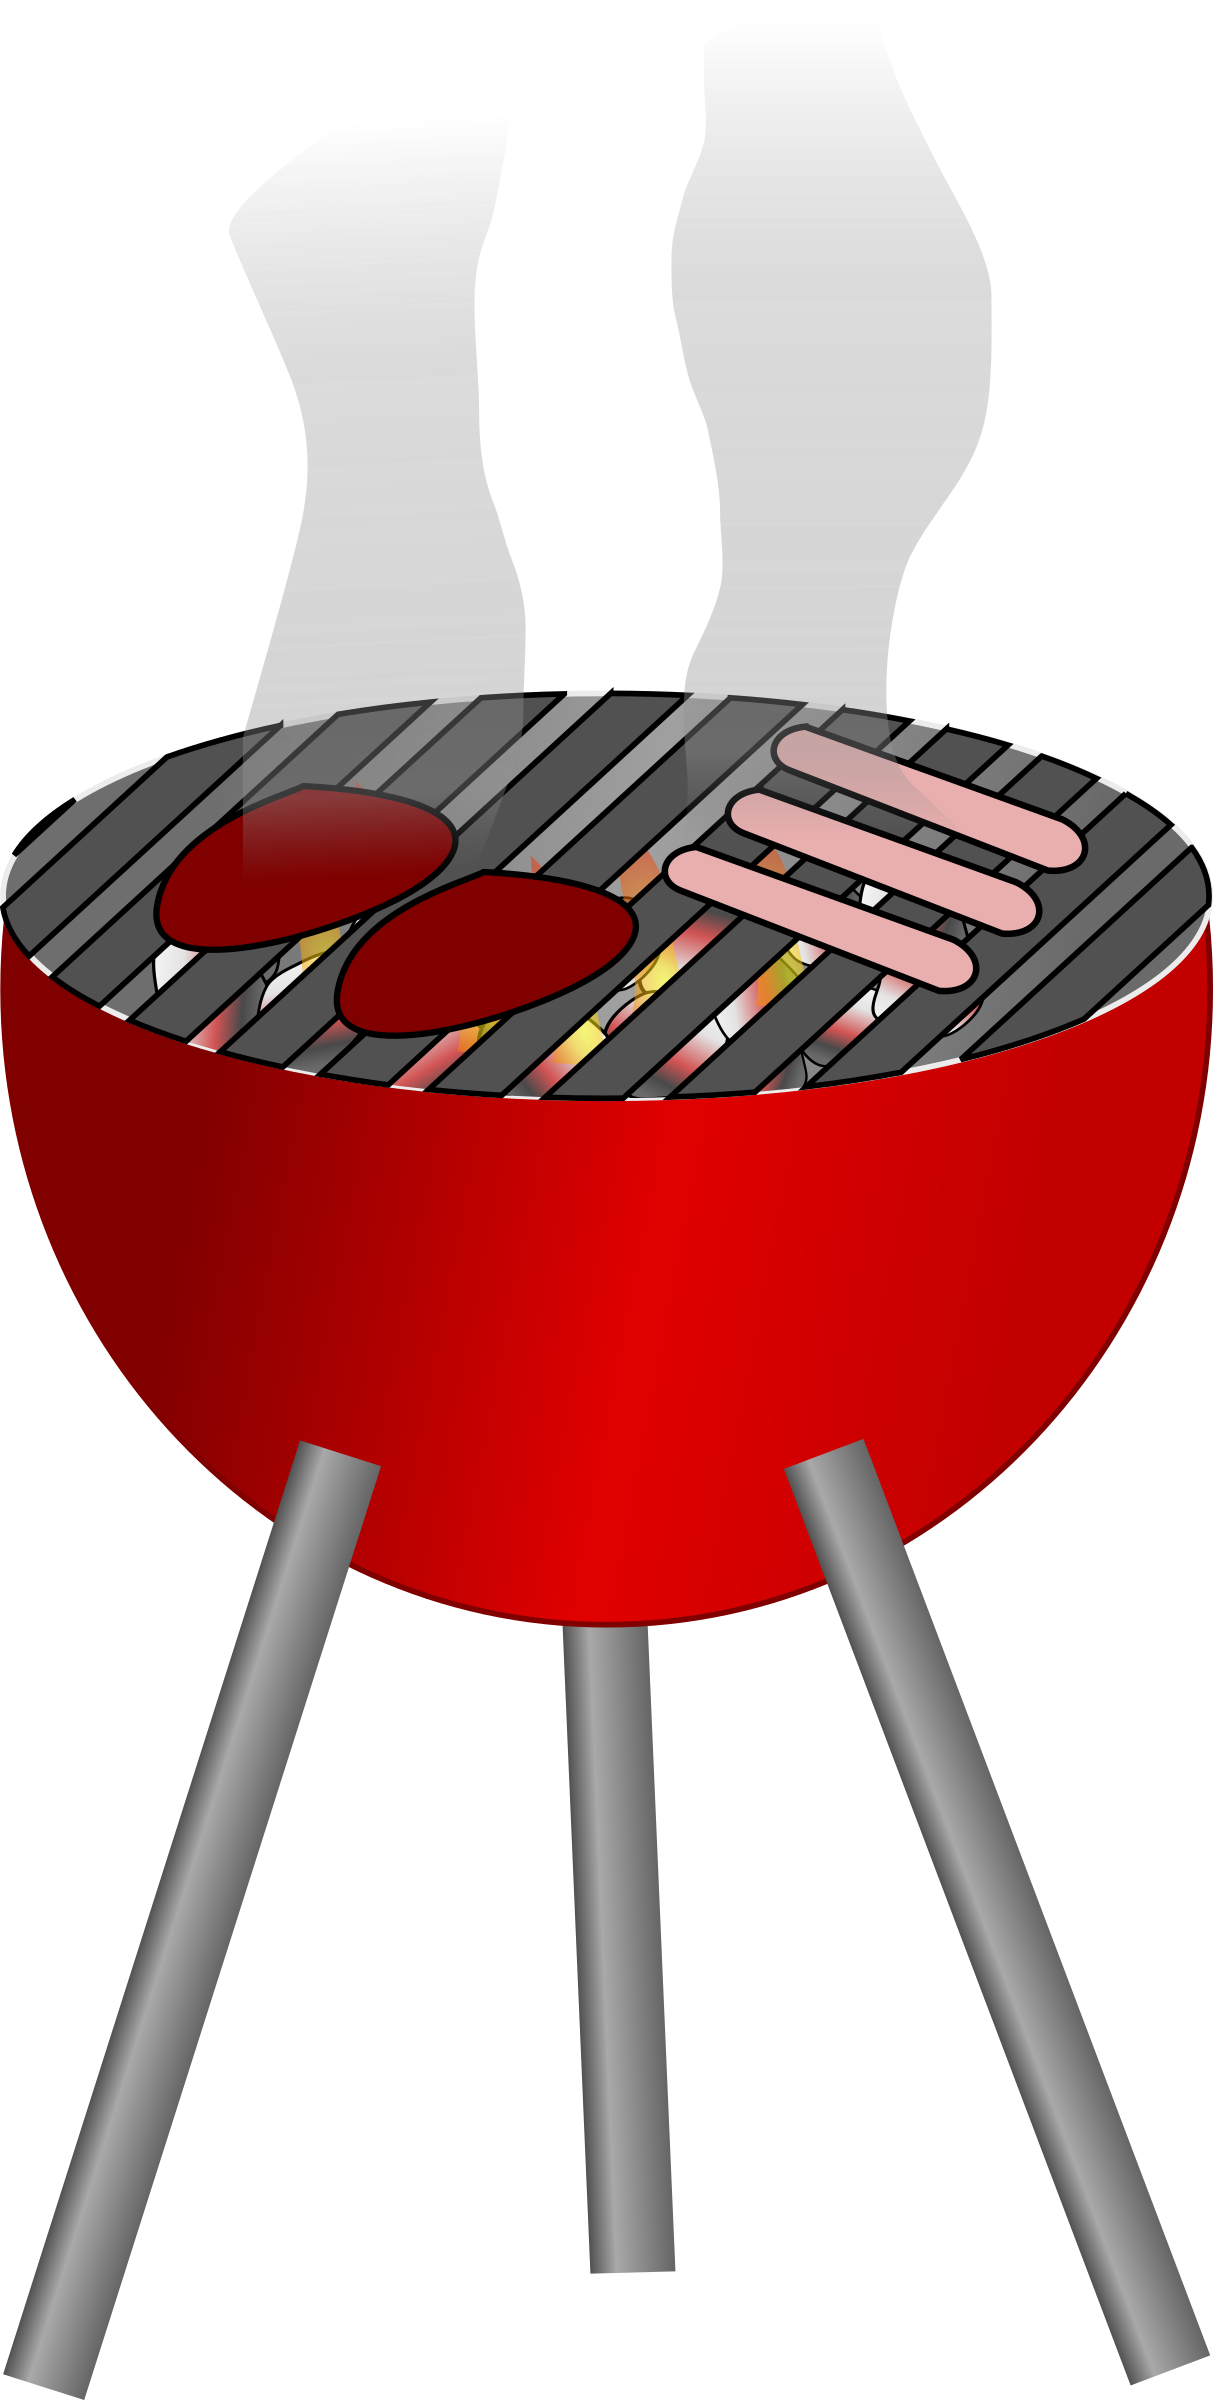 Grilling clipart grille. Barbecue